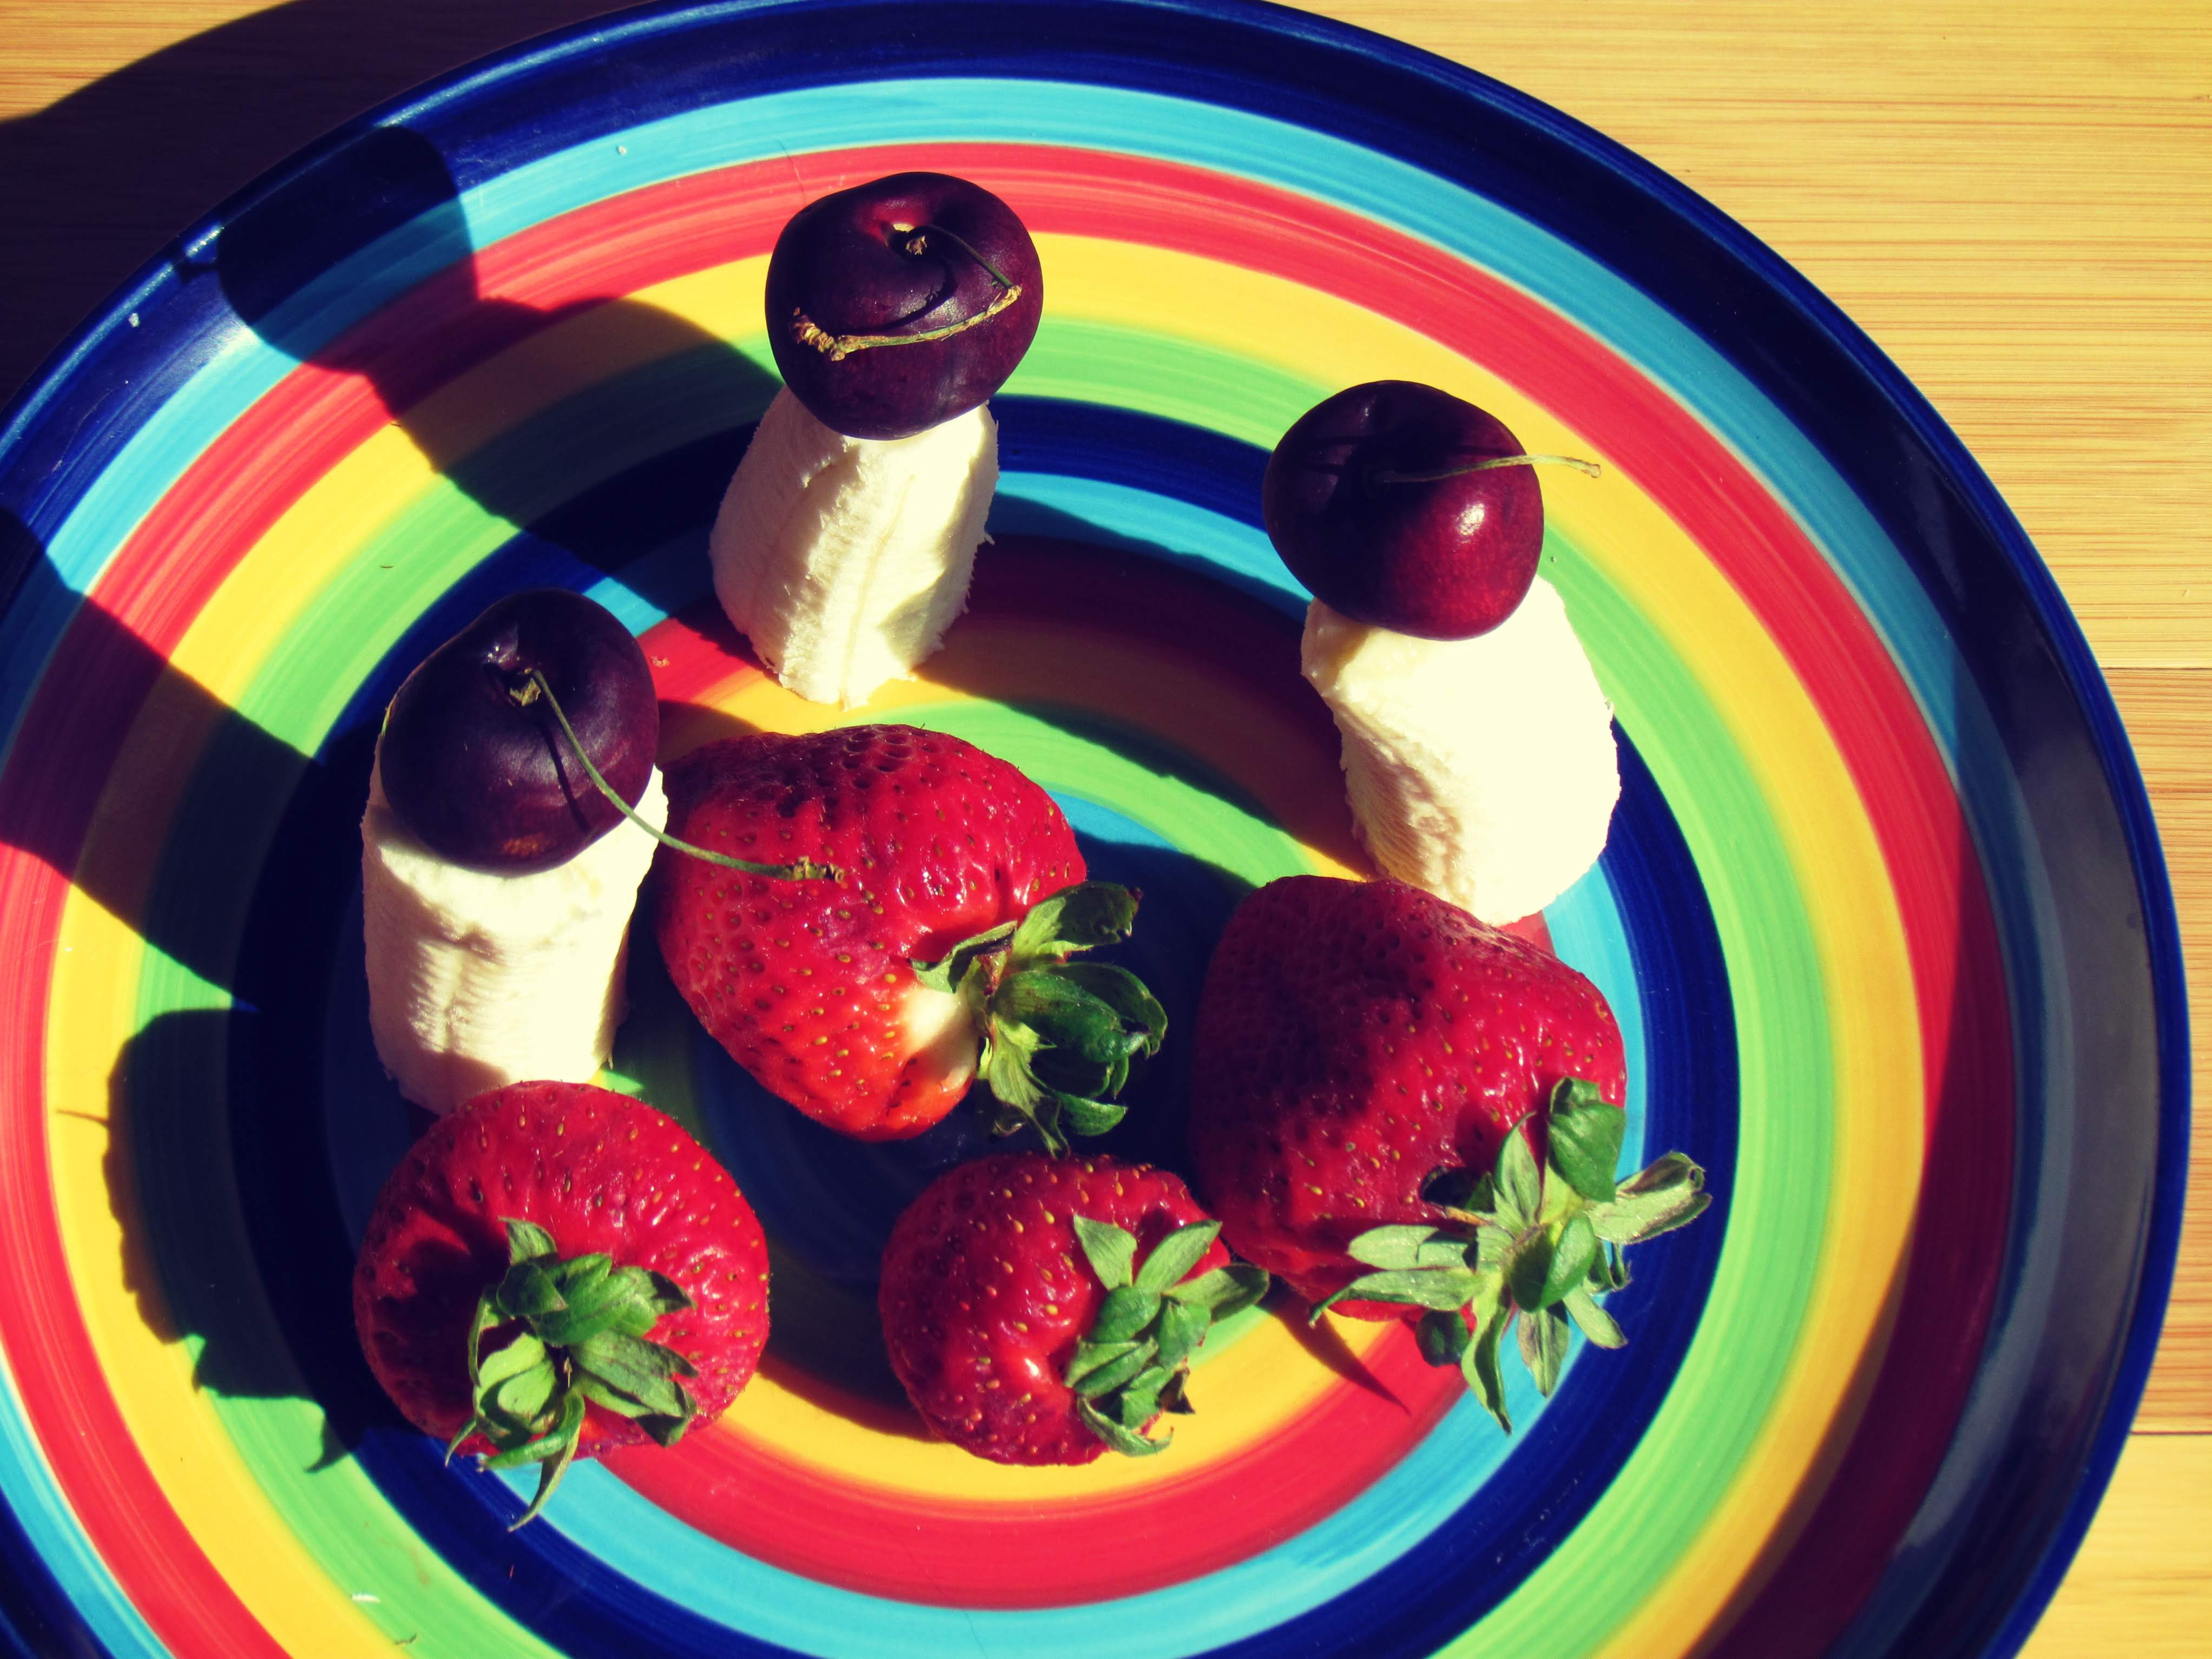 A rainbow plate of raw fruits and vegetables + roughage diet